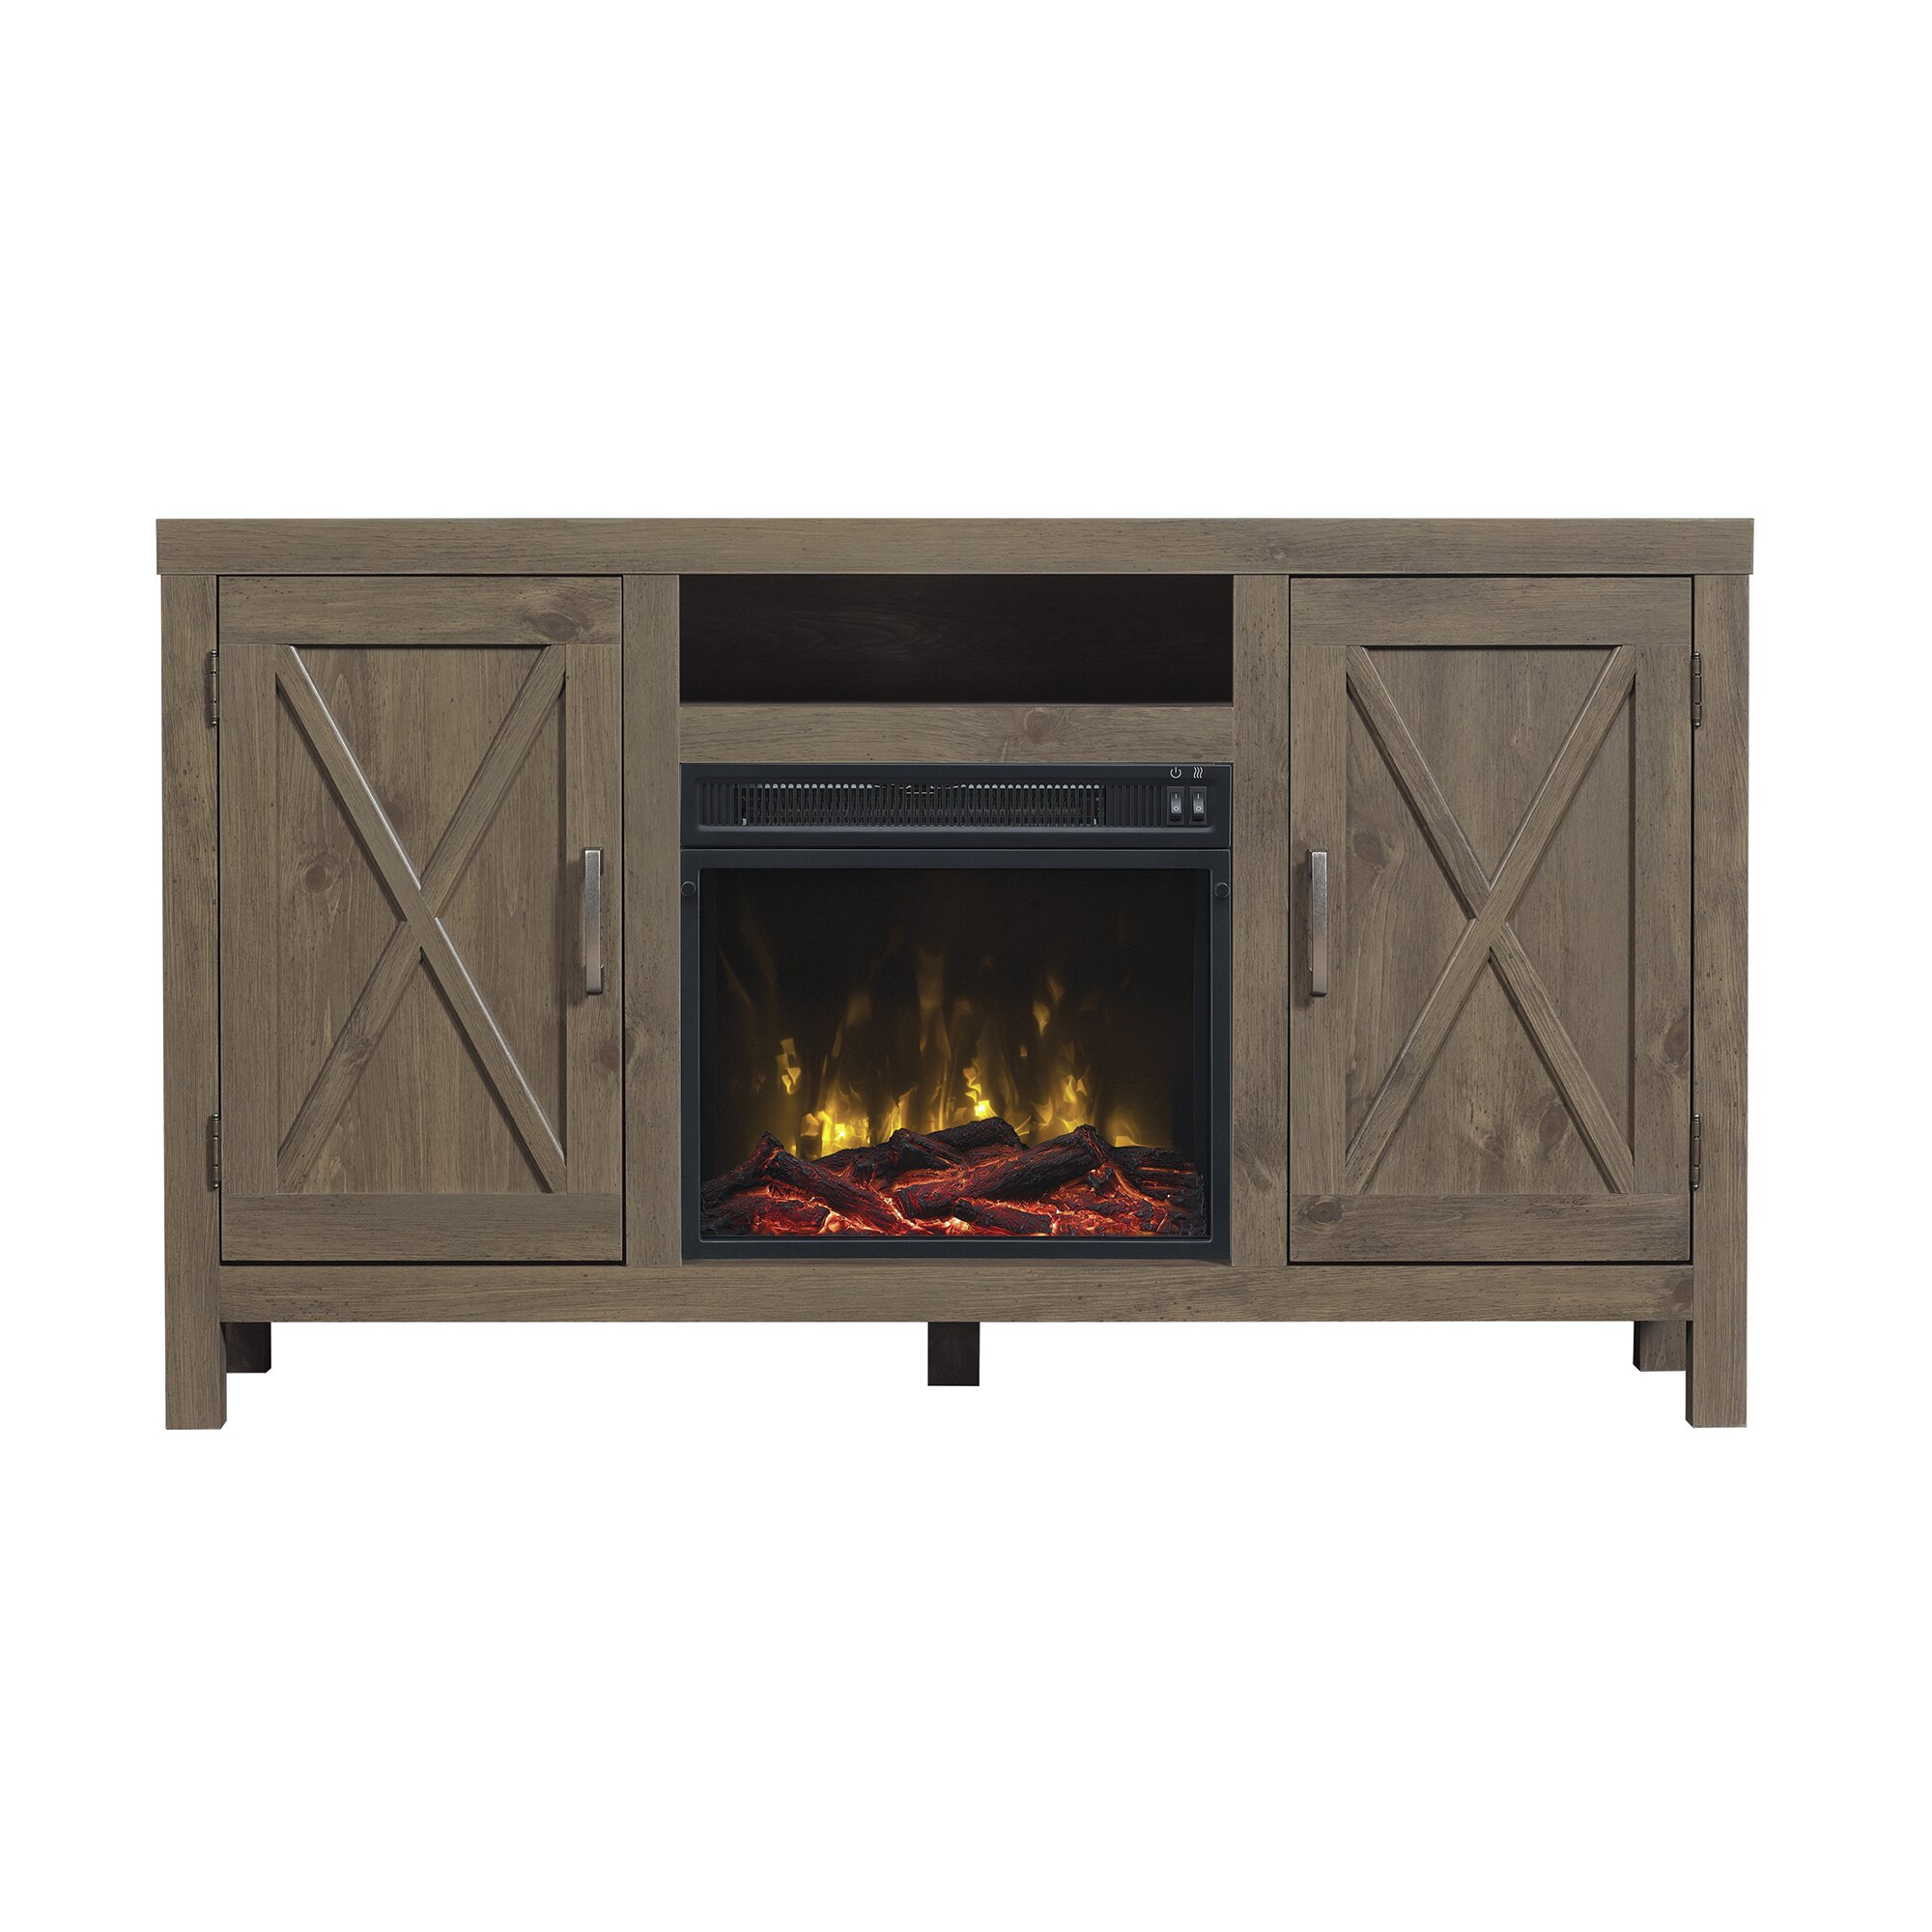 White tv stand with electric fireplace - Dodson Tv Stand With Electric Fireplace